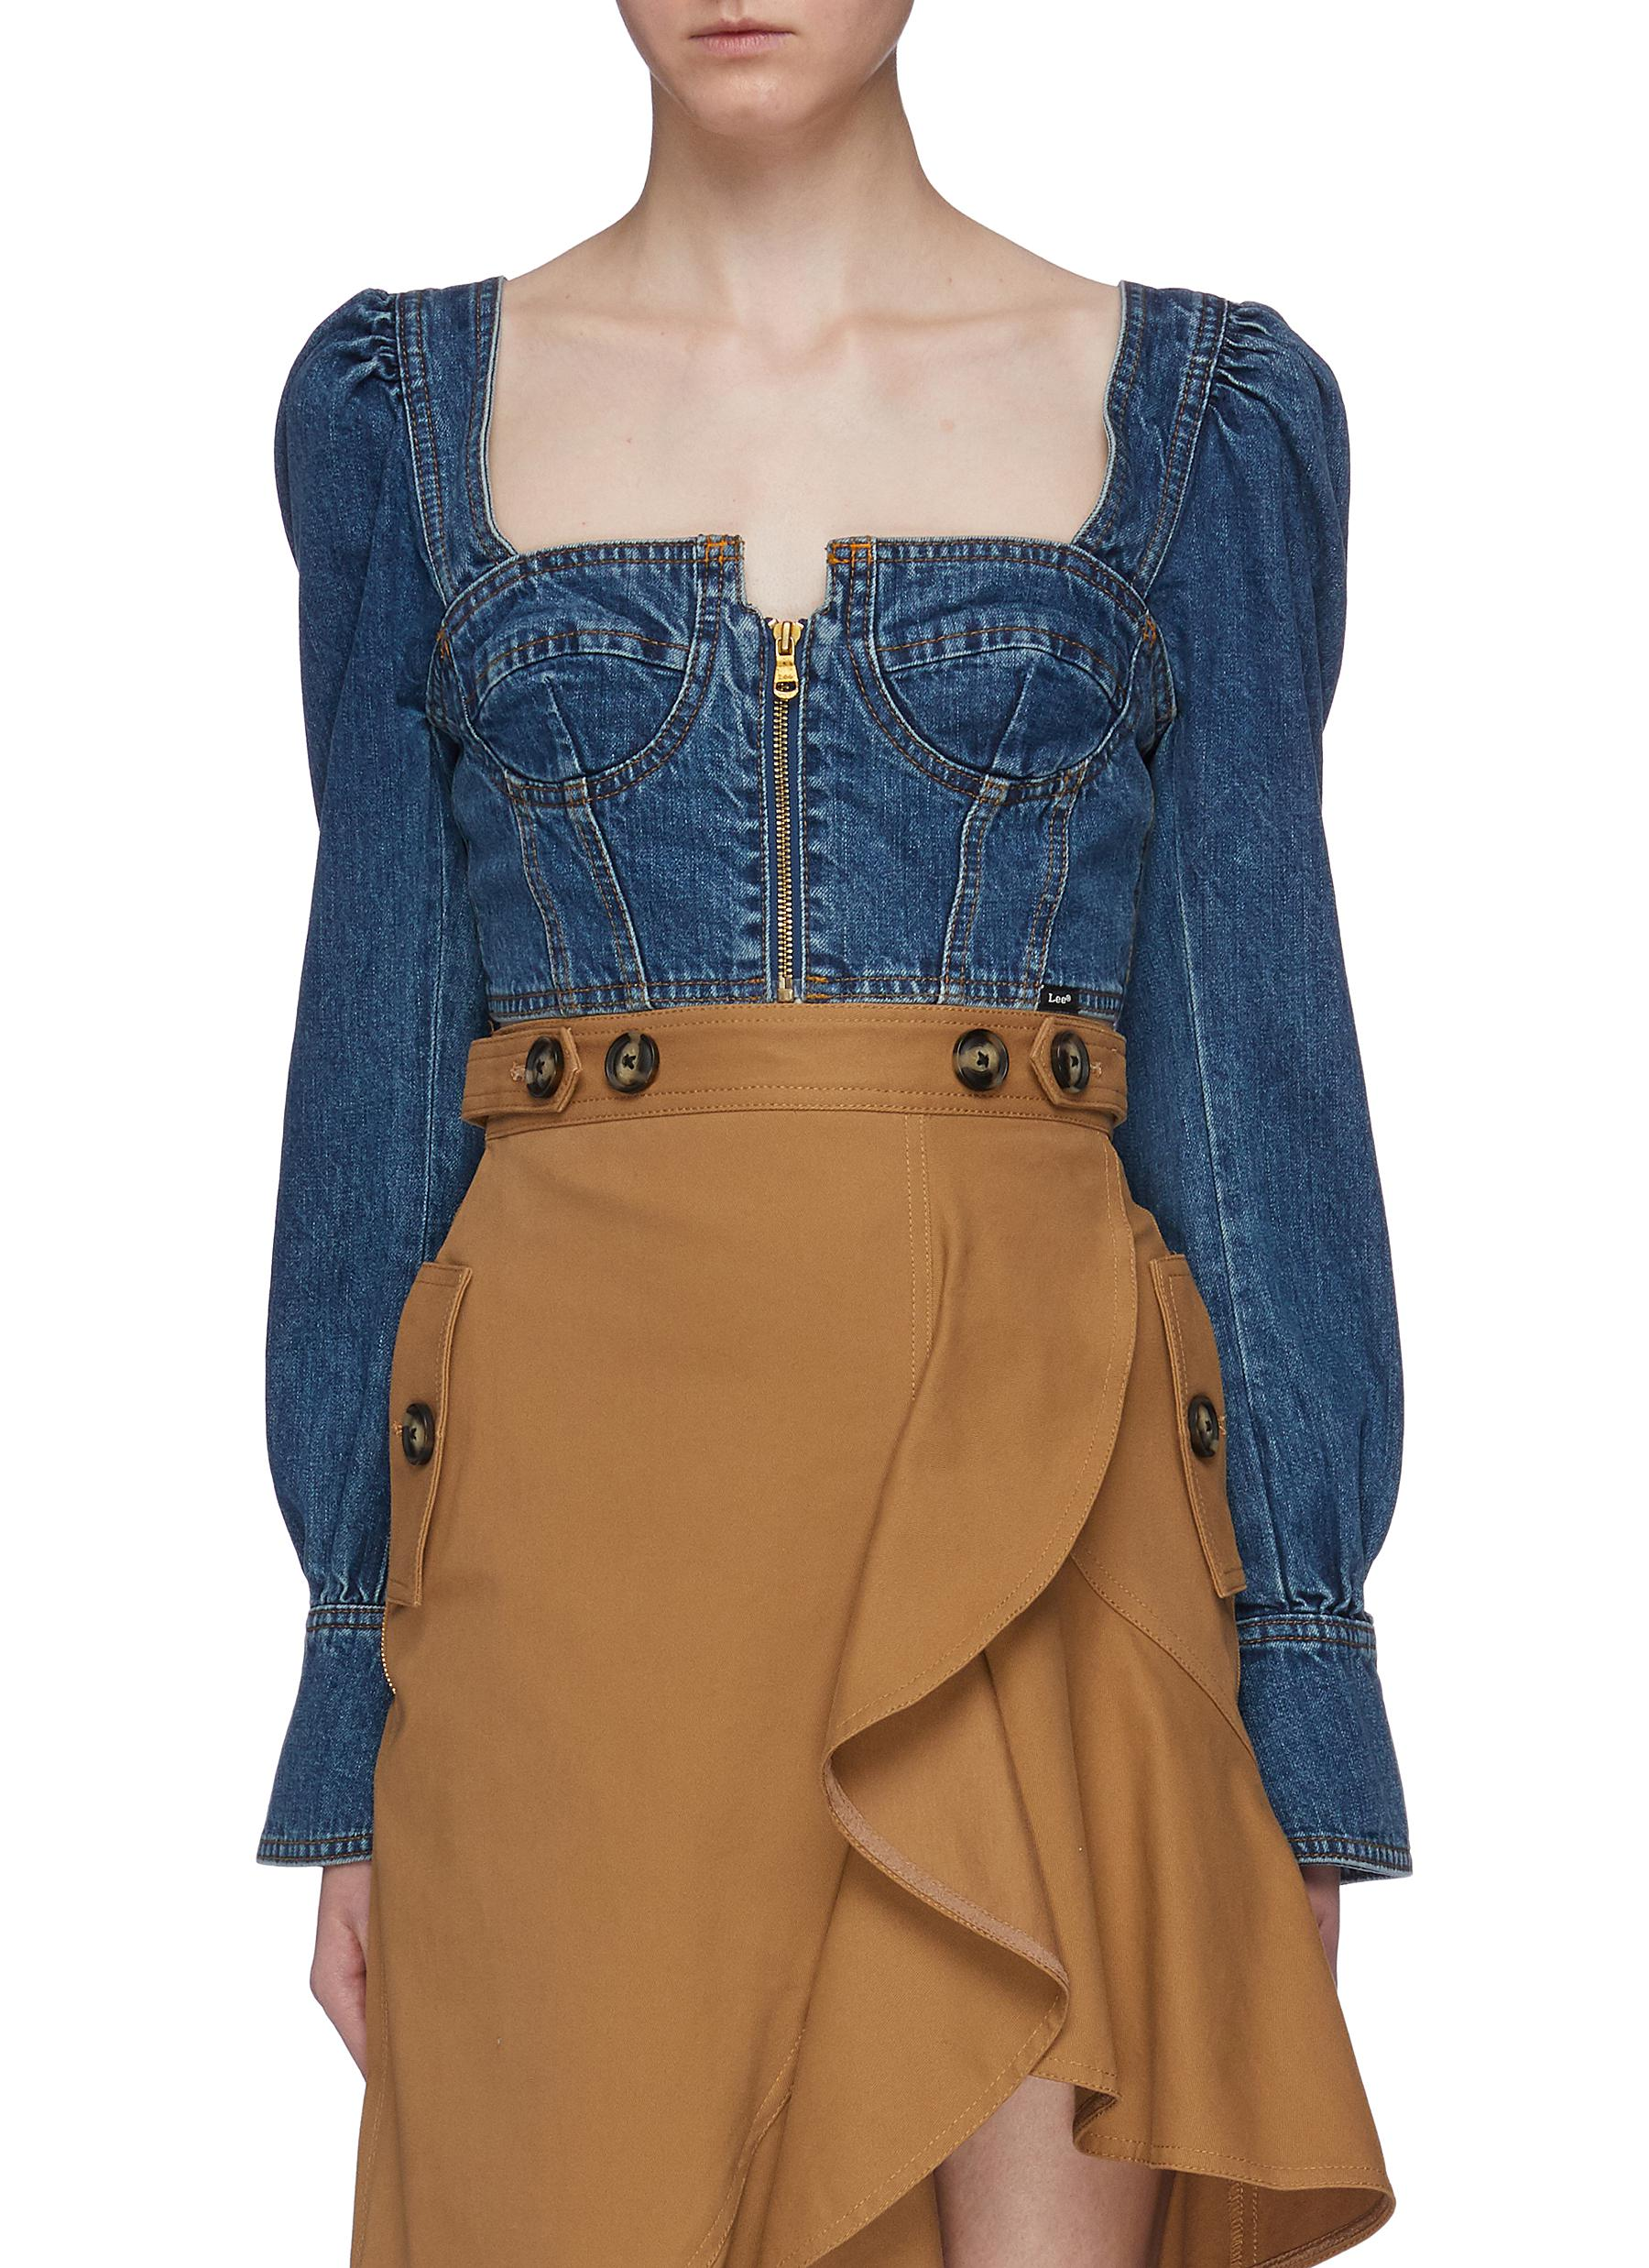 c553aa7e393 ... front cropped denim bustier top. Main View - Click To Enlarge -  SELF-PORTRAIT - x Lee blouson sleeve zip